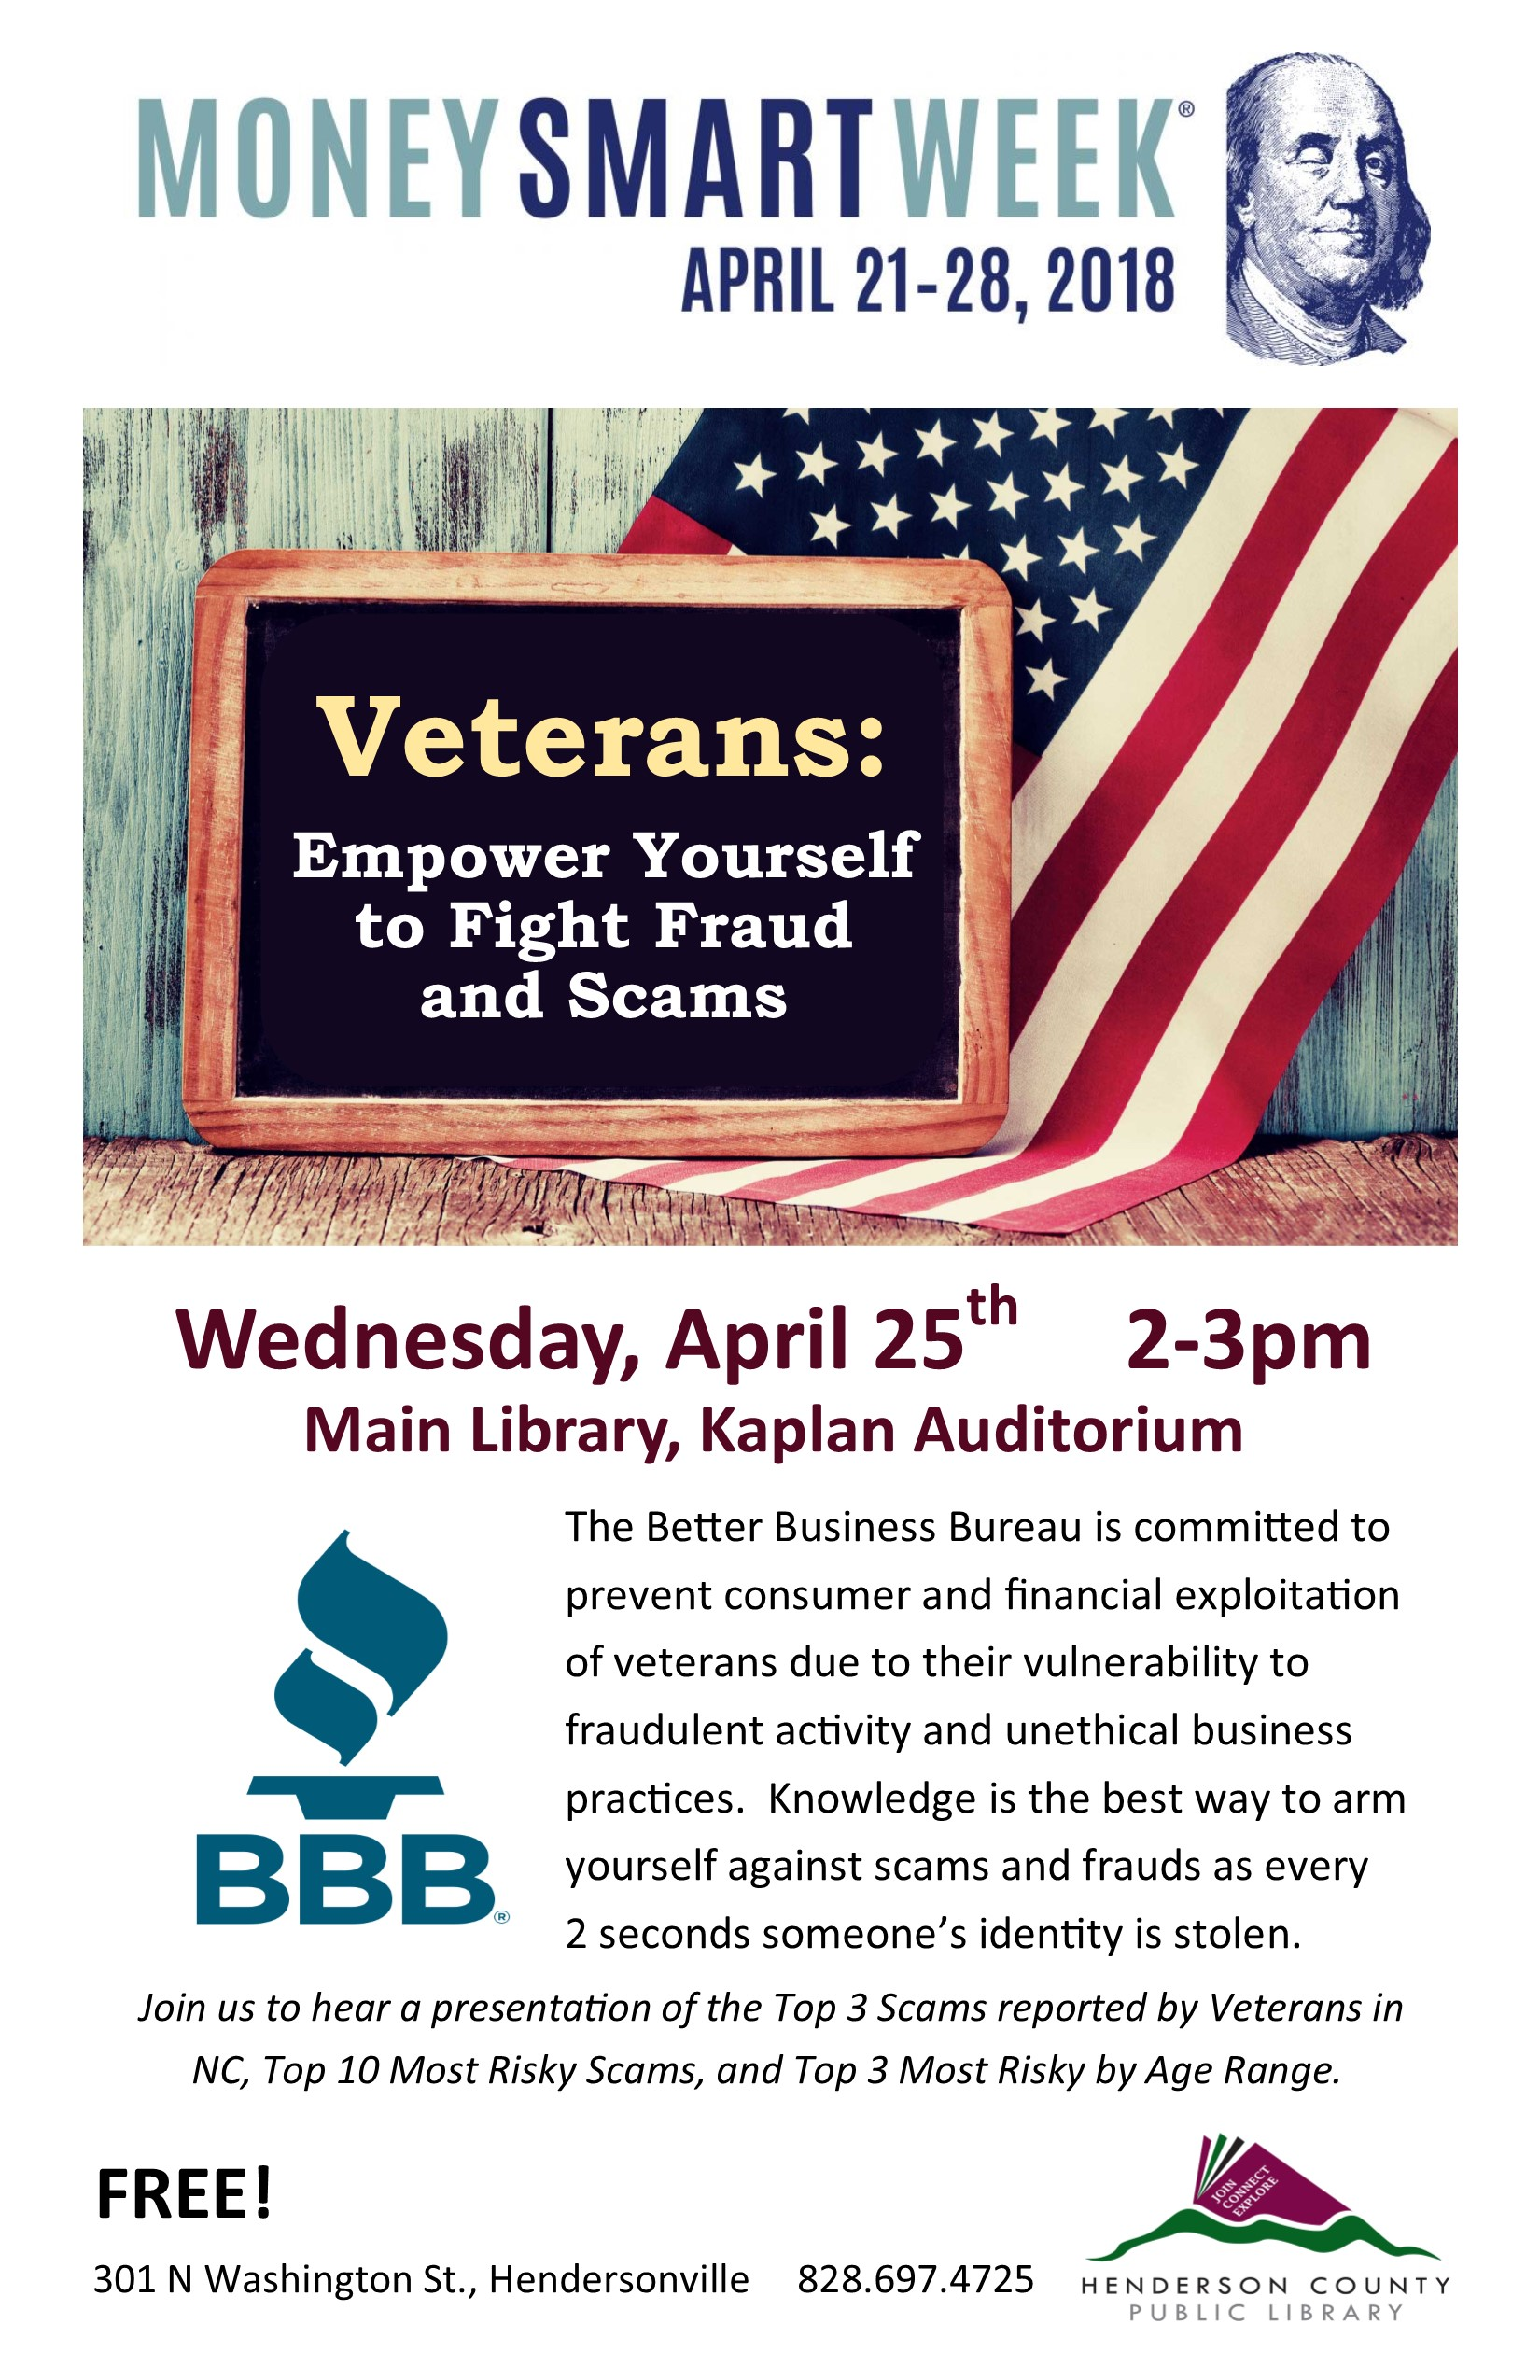 Veterans:  Empower Yourself to Fight Fraud and Scams- Money Smart Week